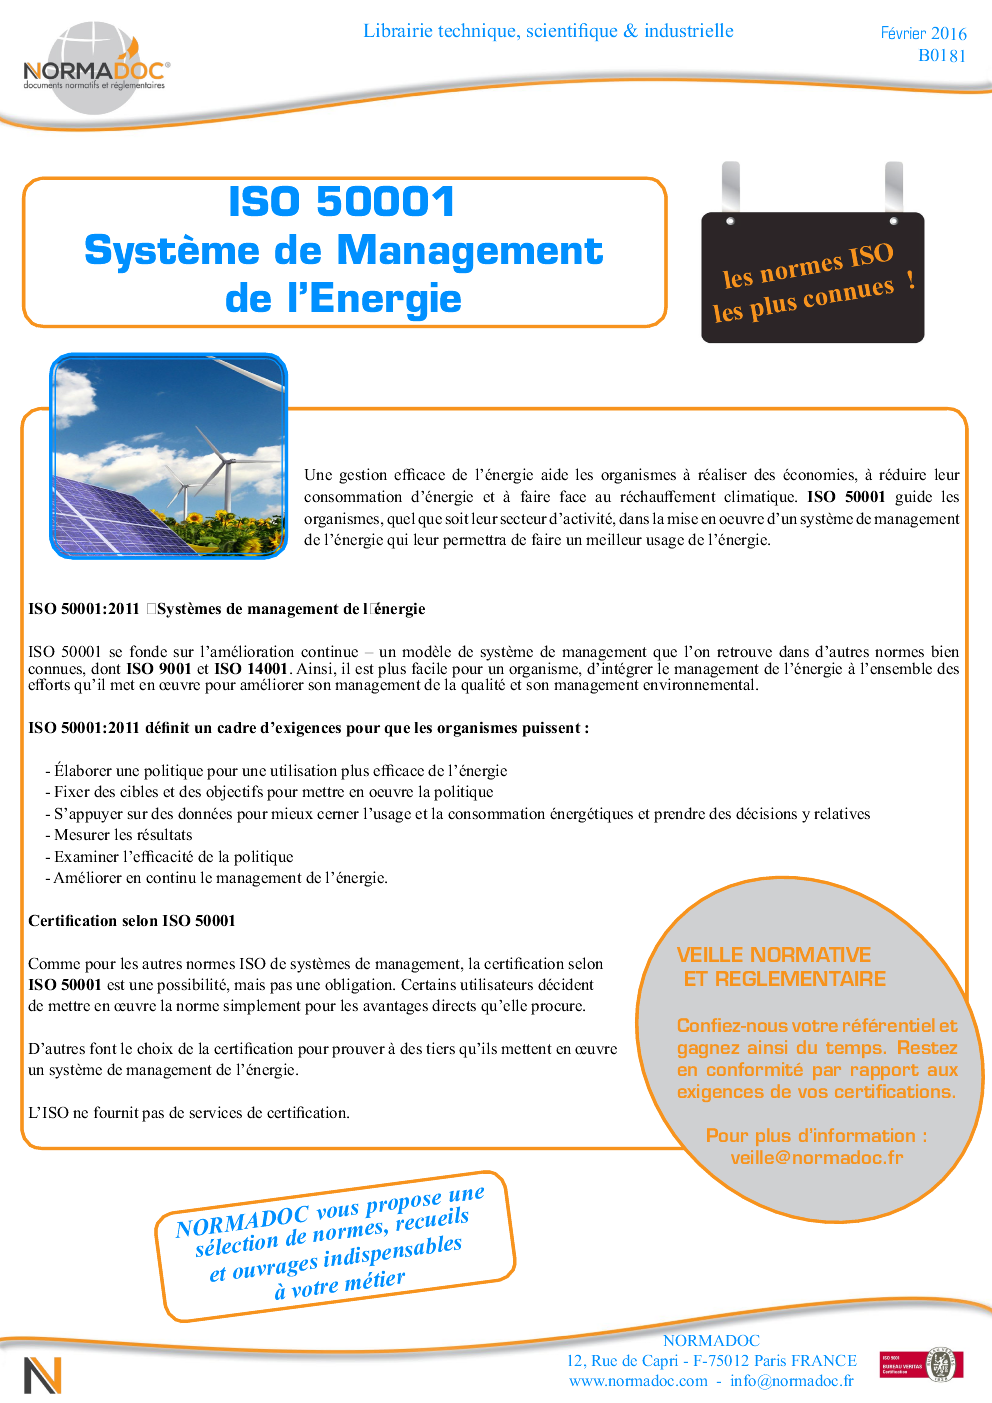 ISO 50001: EMS - Energy Management System